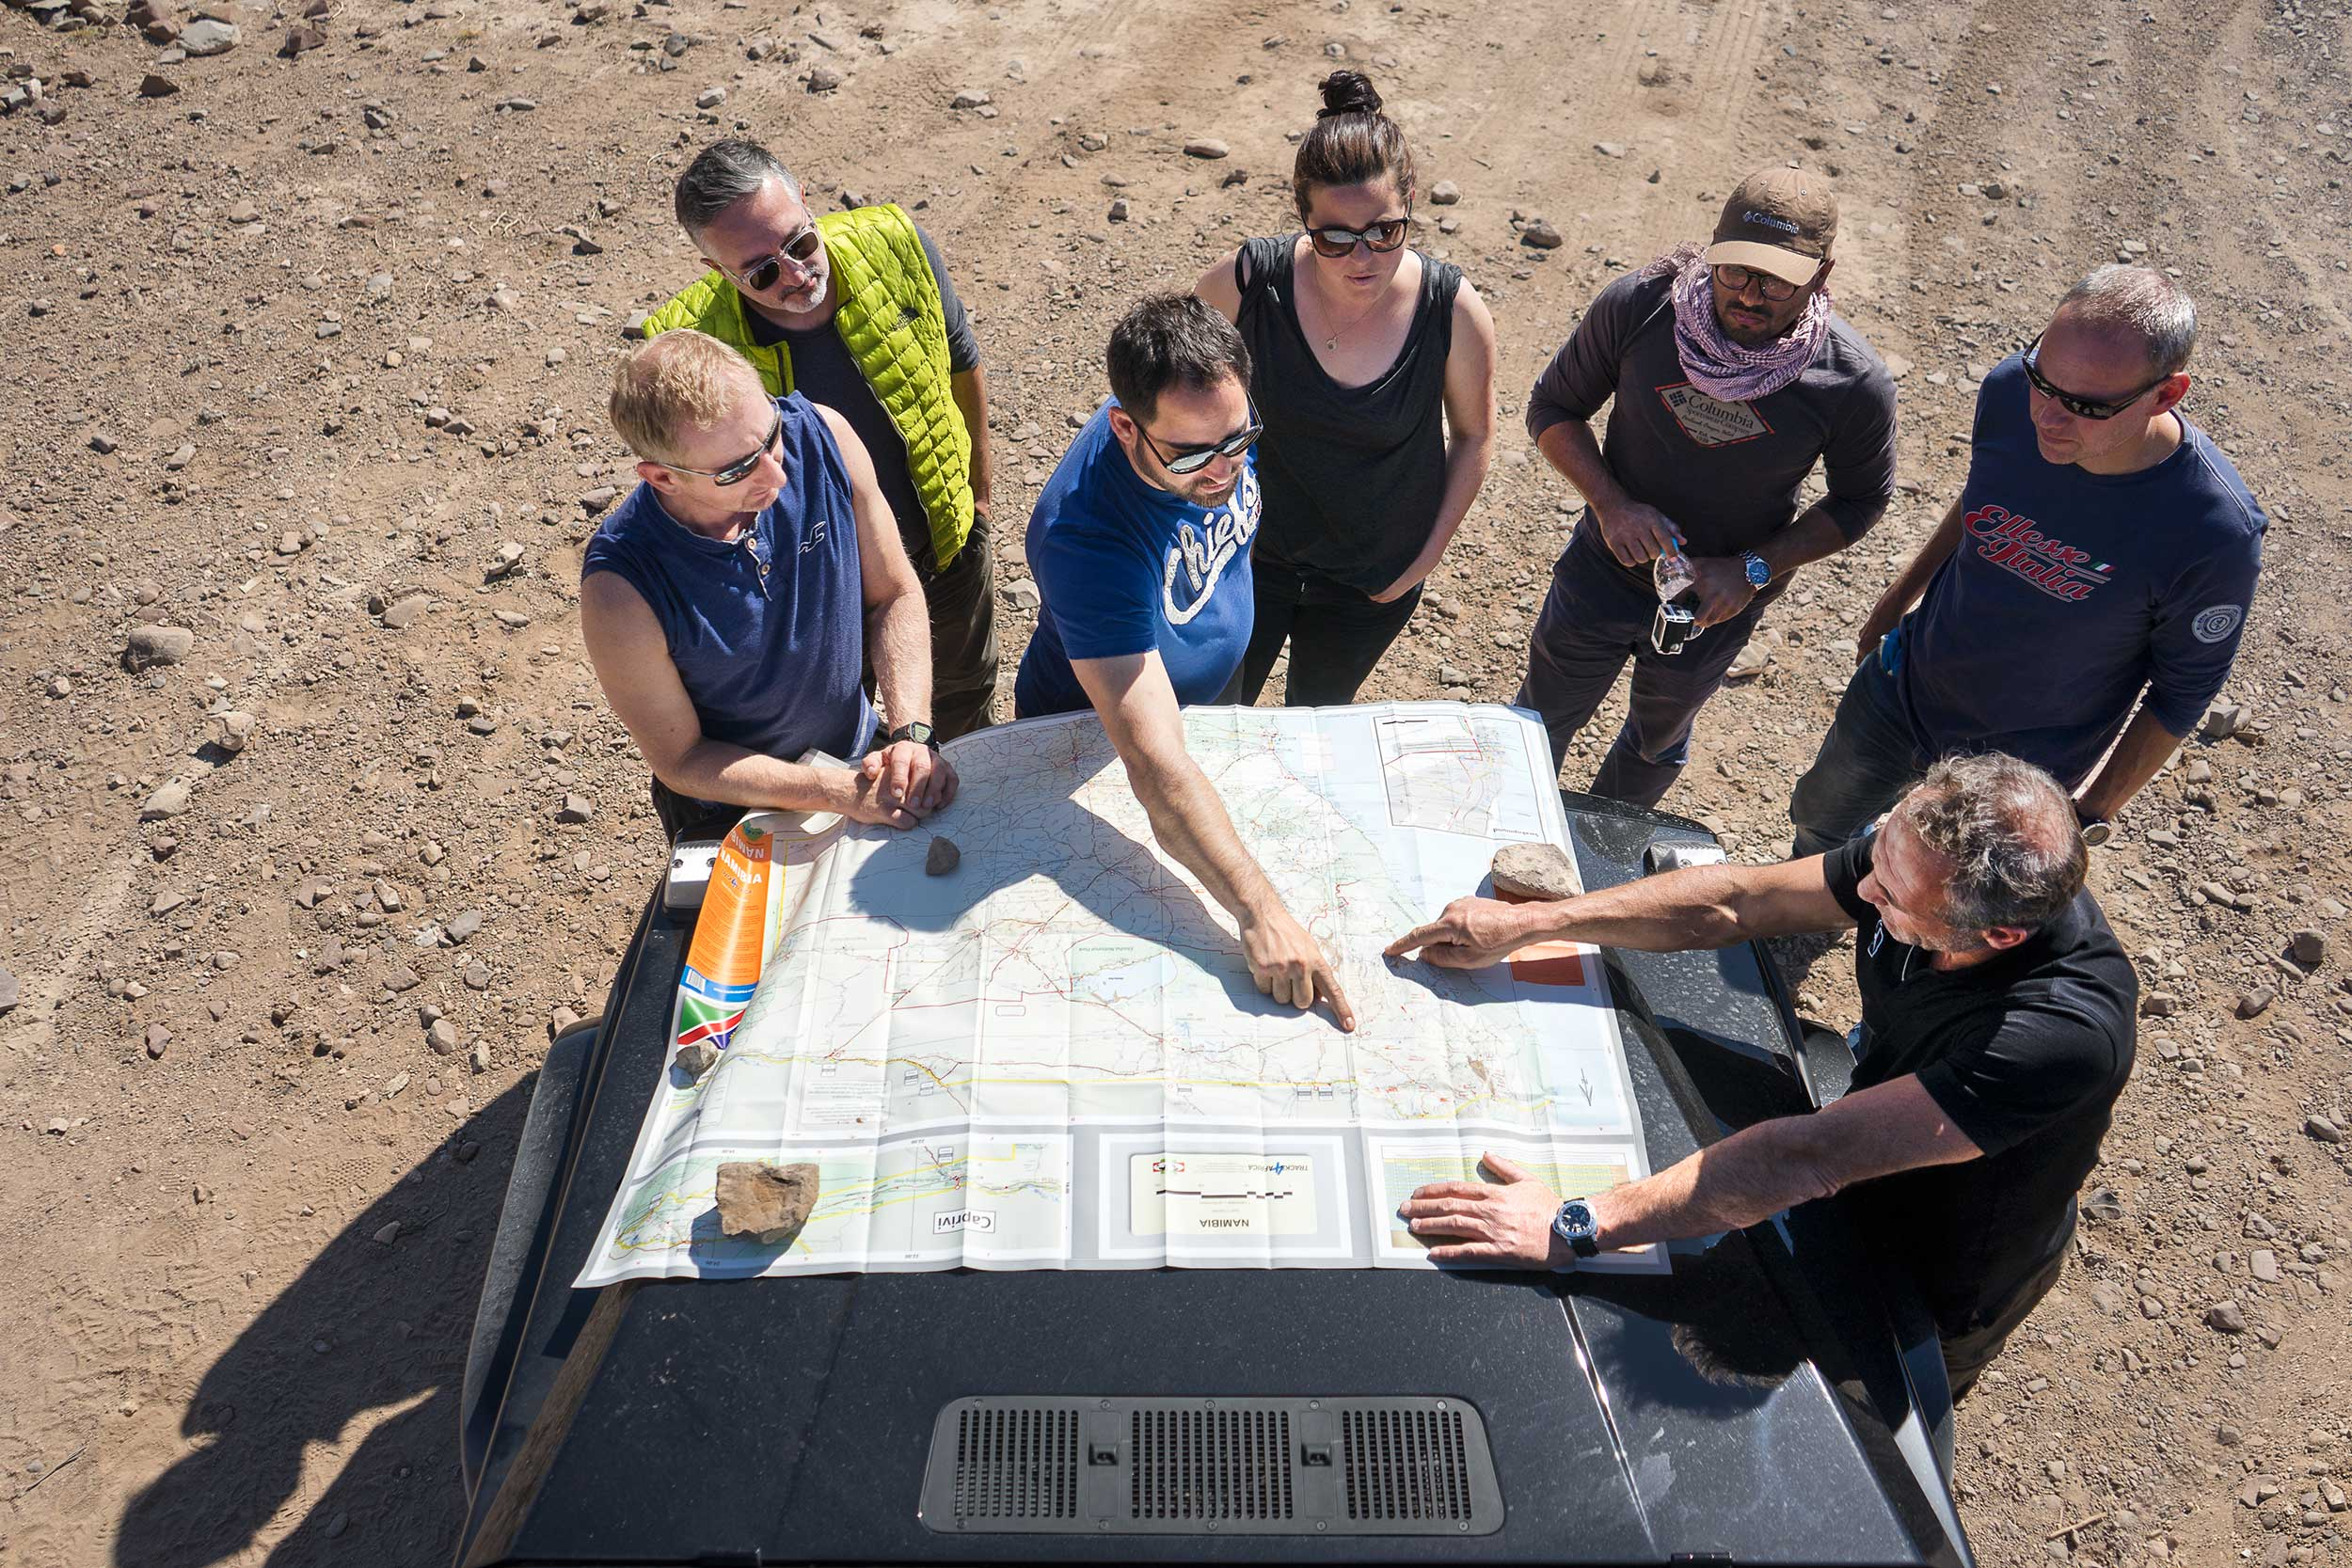 The group gathers around a map to figure out where we are today and where exactly we're headed. The drive was mostly an unplanned adventure, with Mike taking what appeared to be new and arbitrary decision about the route daily. Photo: Apoorva Prasad